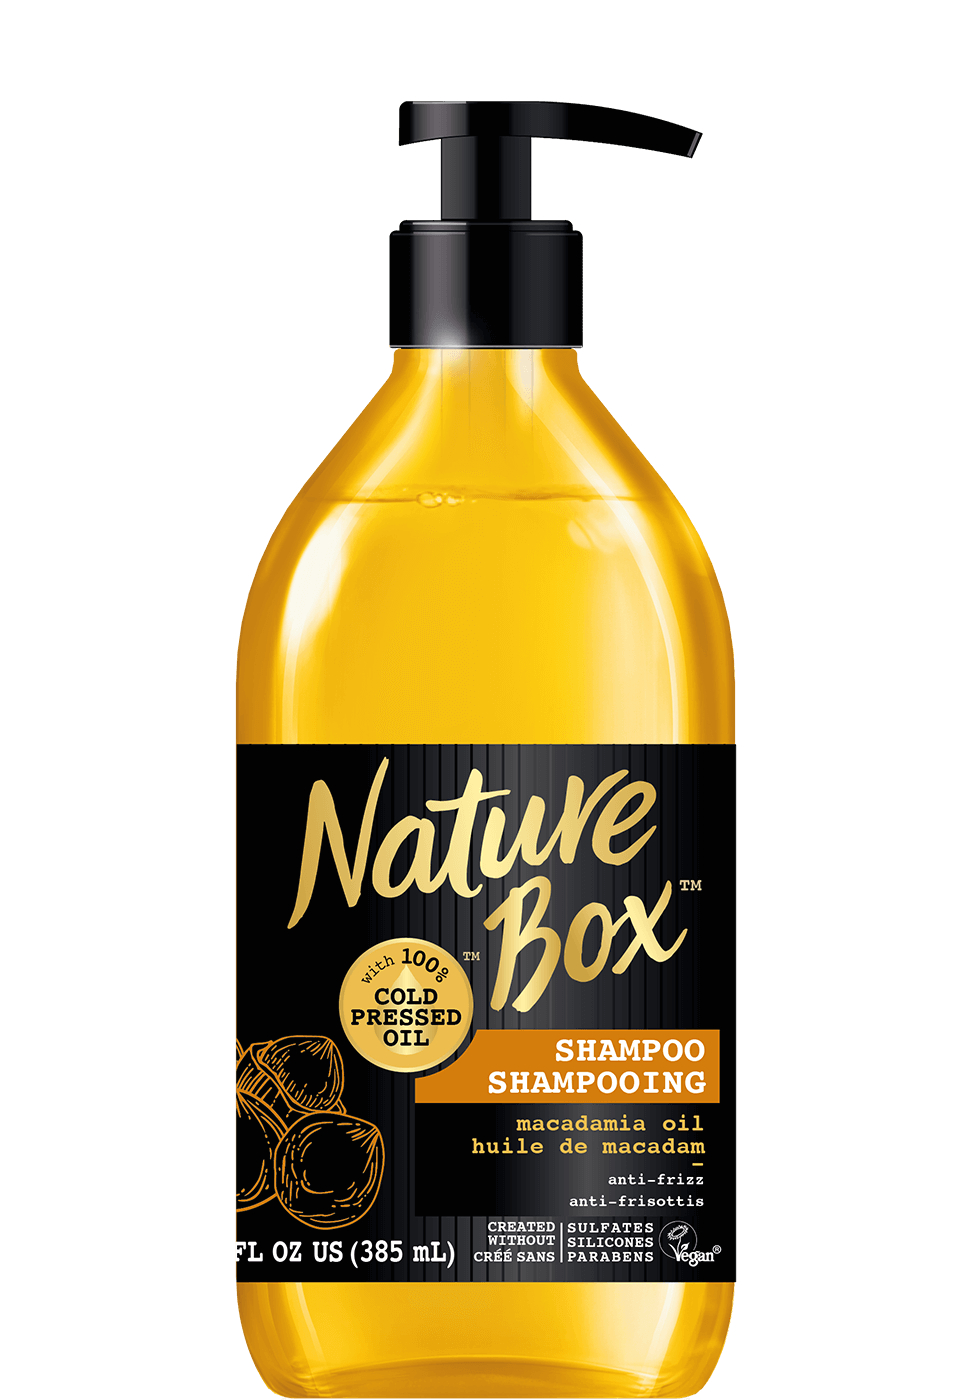 naturebox_us_macadamia_shampoo_970x1400